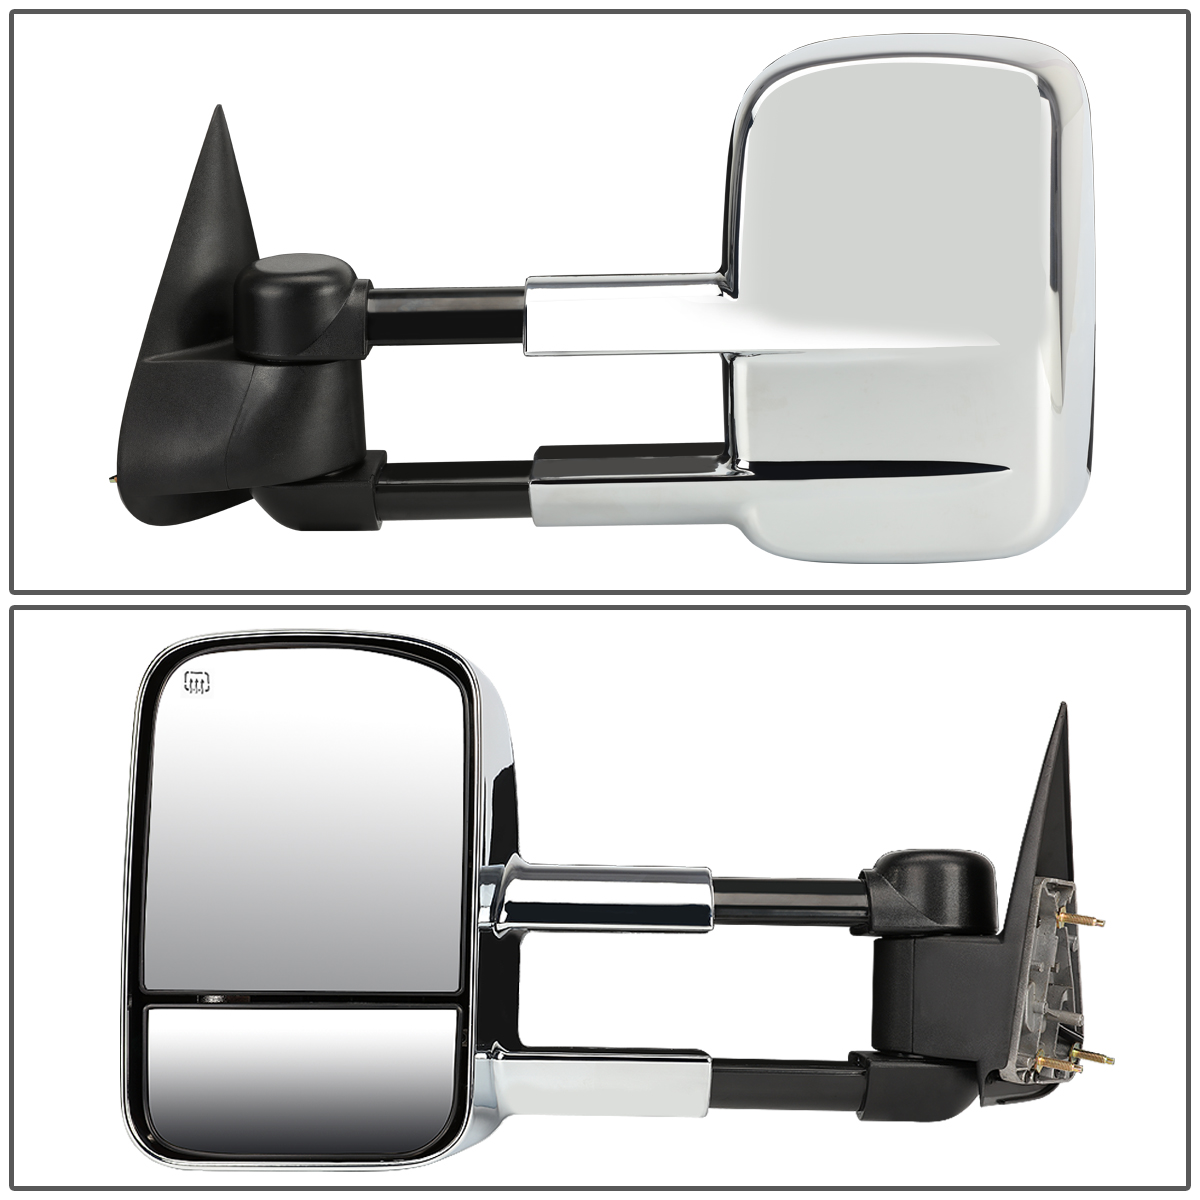 Black Pair Telescopic Extended Arm Rear View Manual Towing Side Mirror for Chevy Silverado GMC Sierra 99-06